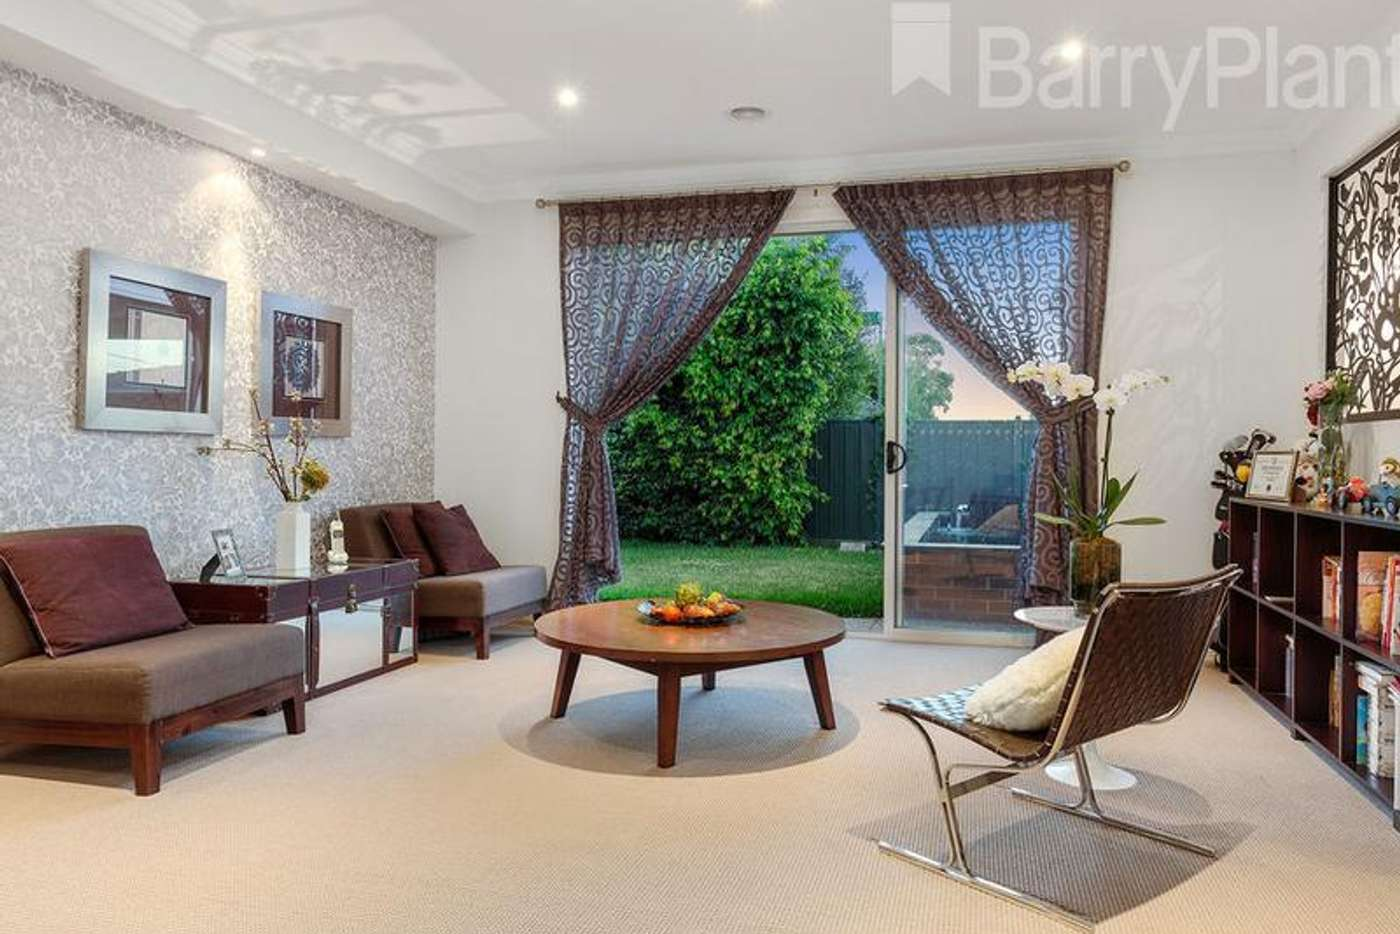 Sixth view of Homely house listing, 323 Gallaghers Road, Glen Waverley VIC 3150